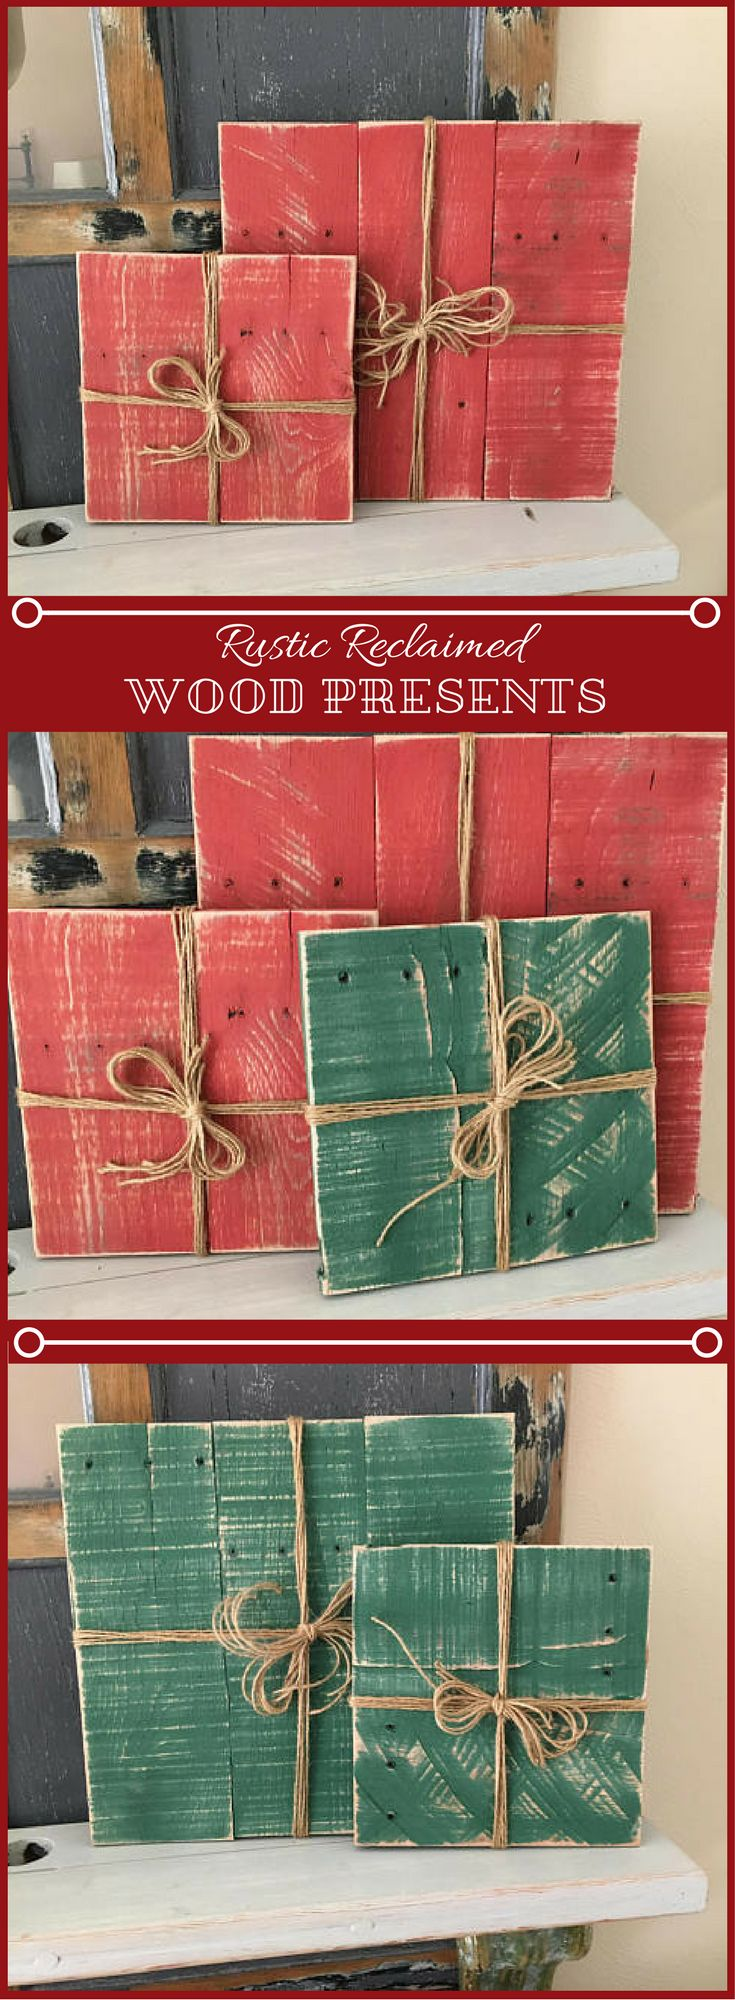 I love the look of these rustic reclaimed wood Christmas presents. They would make a great addition to our Holiday home decor.Rustic Wooden Presents//Primitive Christmas Packages//Rustic Holiday Gifts//Wood Christmas Decorations//Outdoor Christmas Decor. #Ad #Christmasdecor #rusticdecor